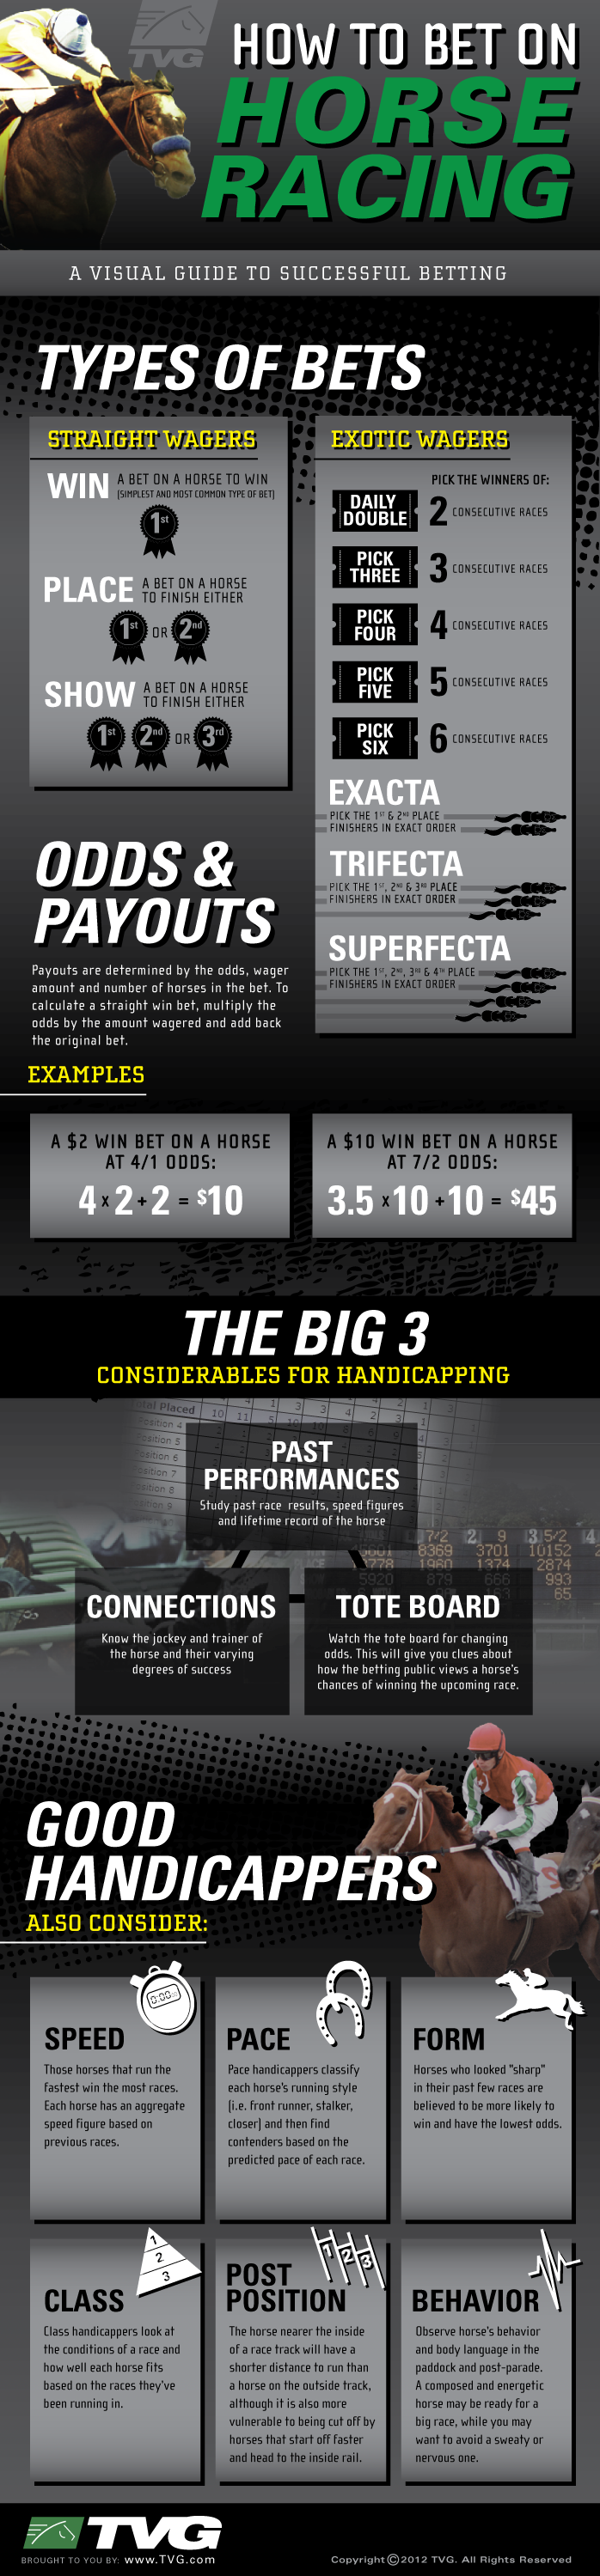 How To Bet On Horse Racing [INFOGRAPHIC] Horse racing